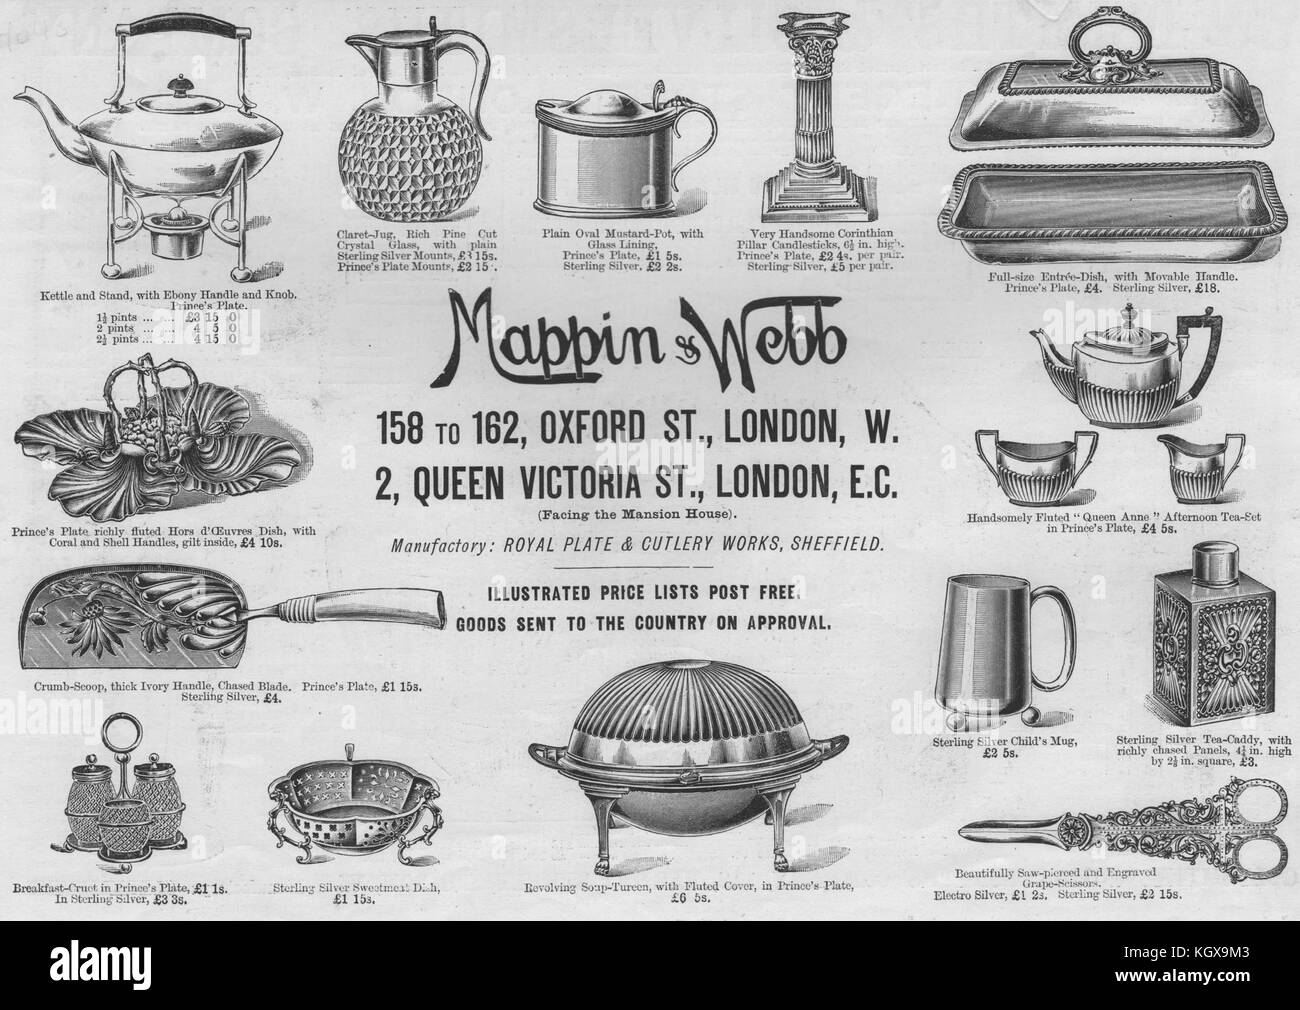 Mappin & Webb. Adverts 1894. The Illustrated London News - Stock Image